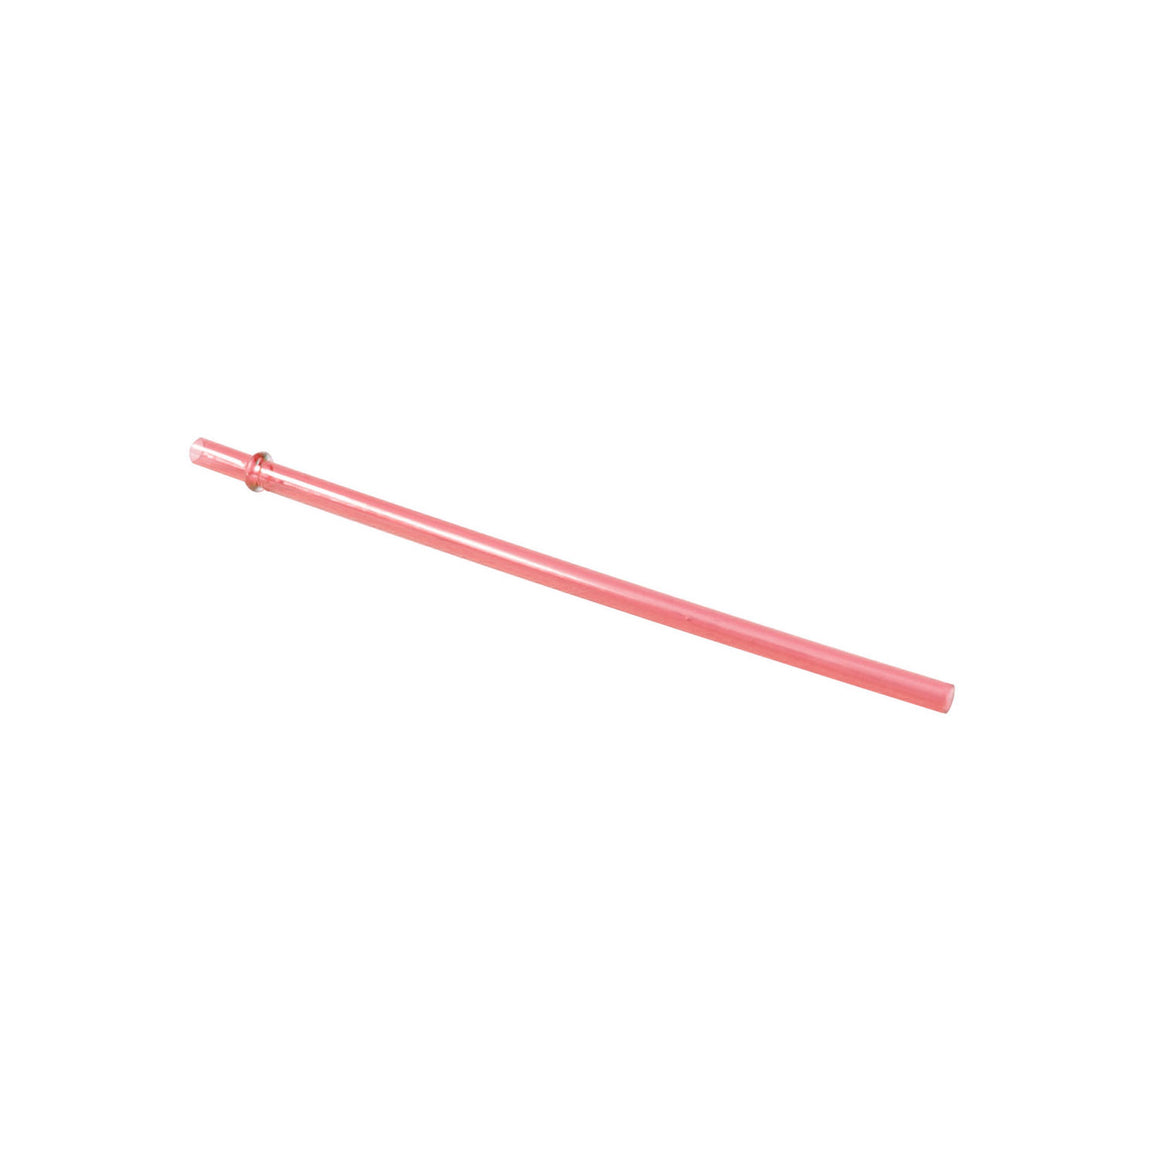 Cool Gear | 7.5-Inch Replacement Straws For Chillers/Tumblers in Red